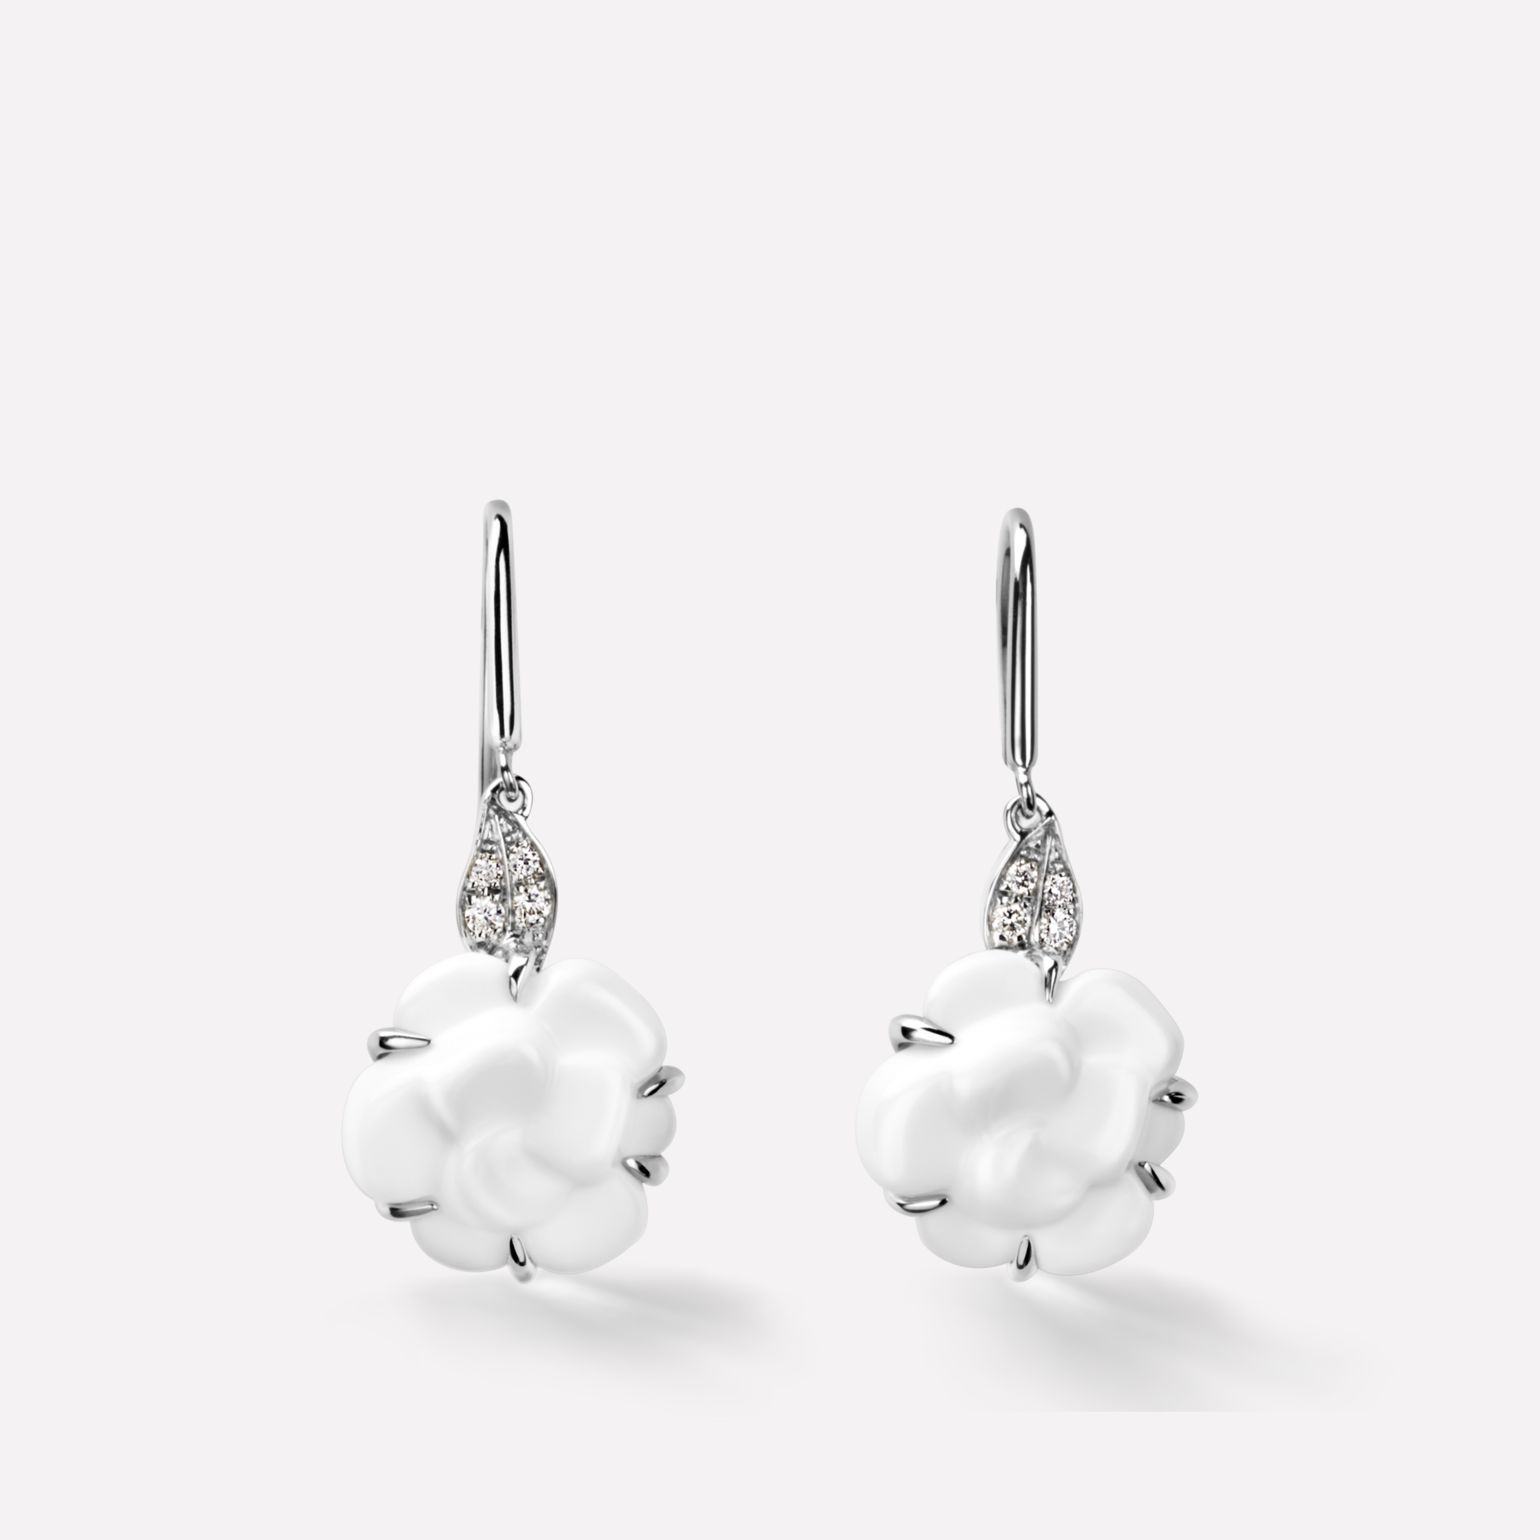 Camélia Earrings Camélia Sculpté earrings in white agate, 18K white gold and diamonds